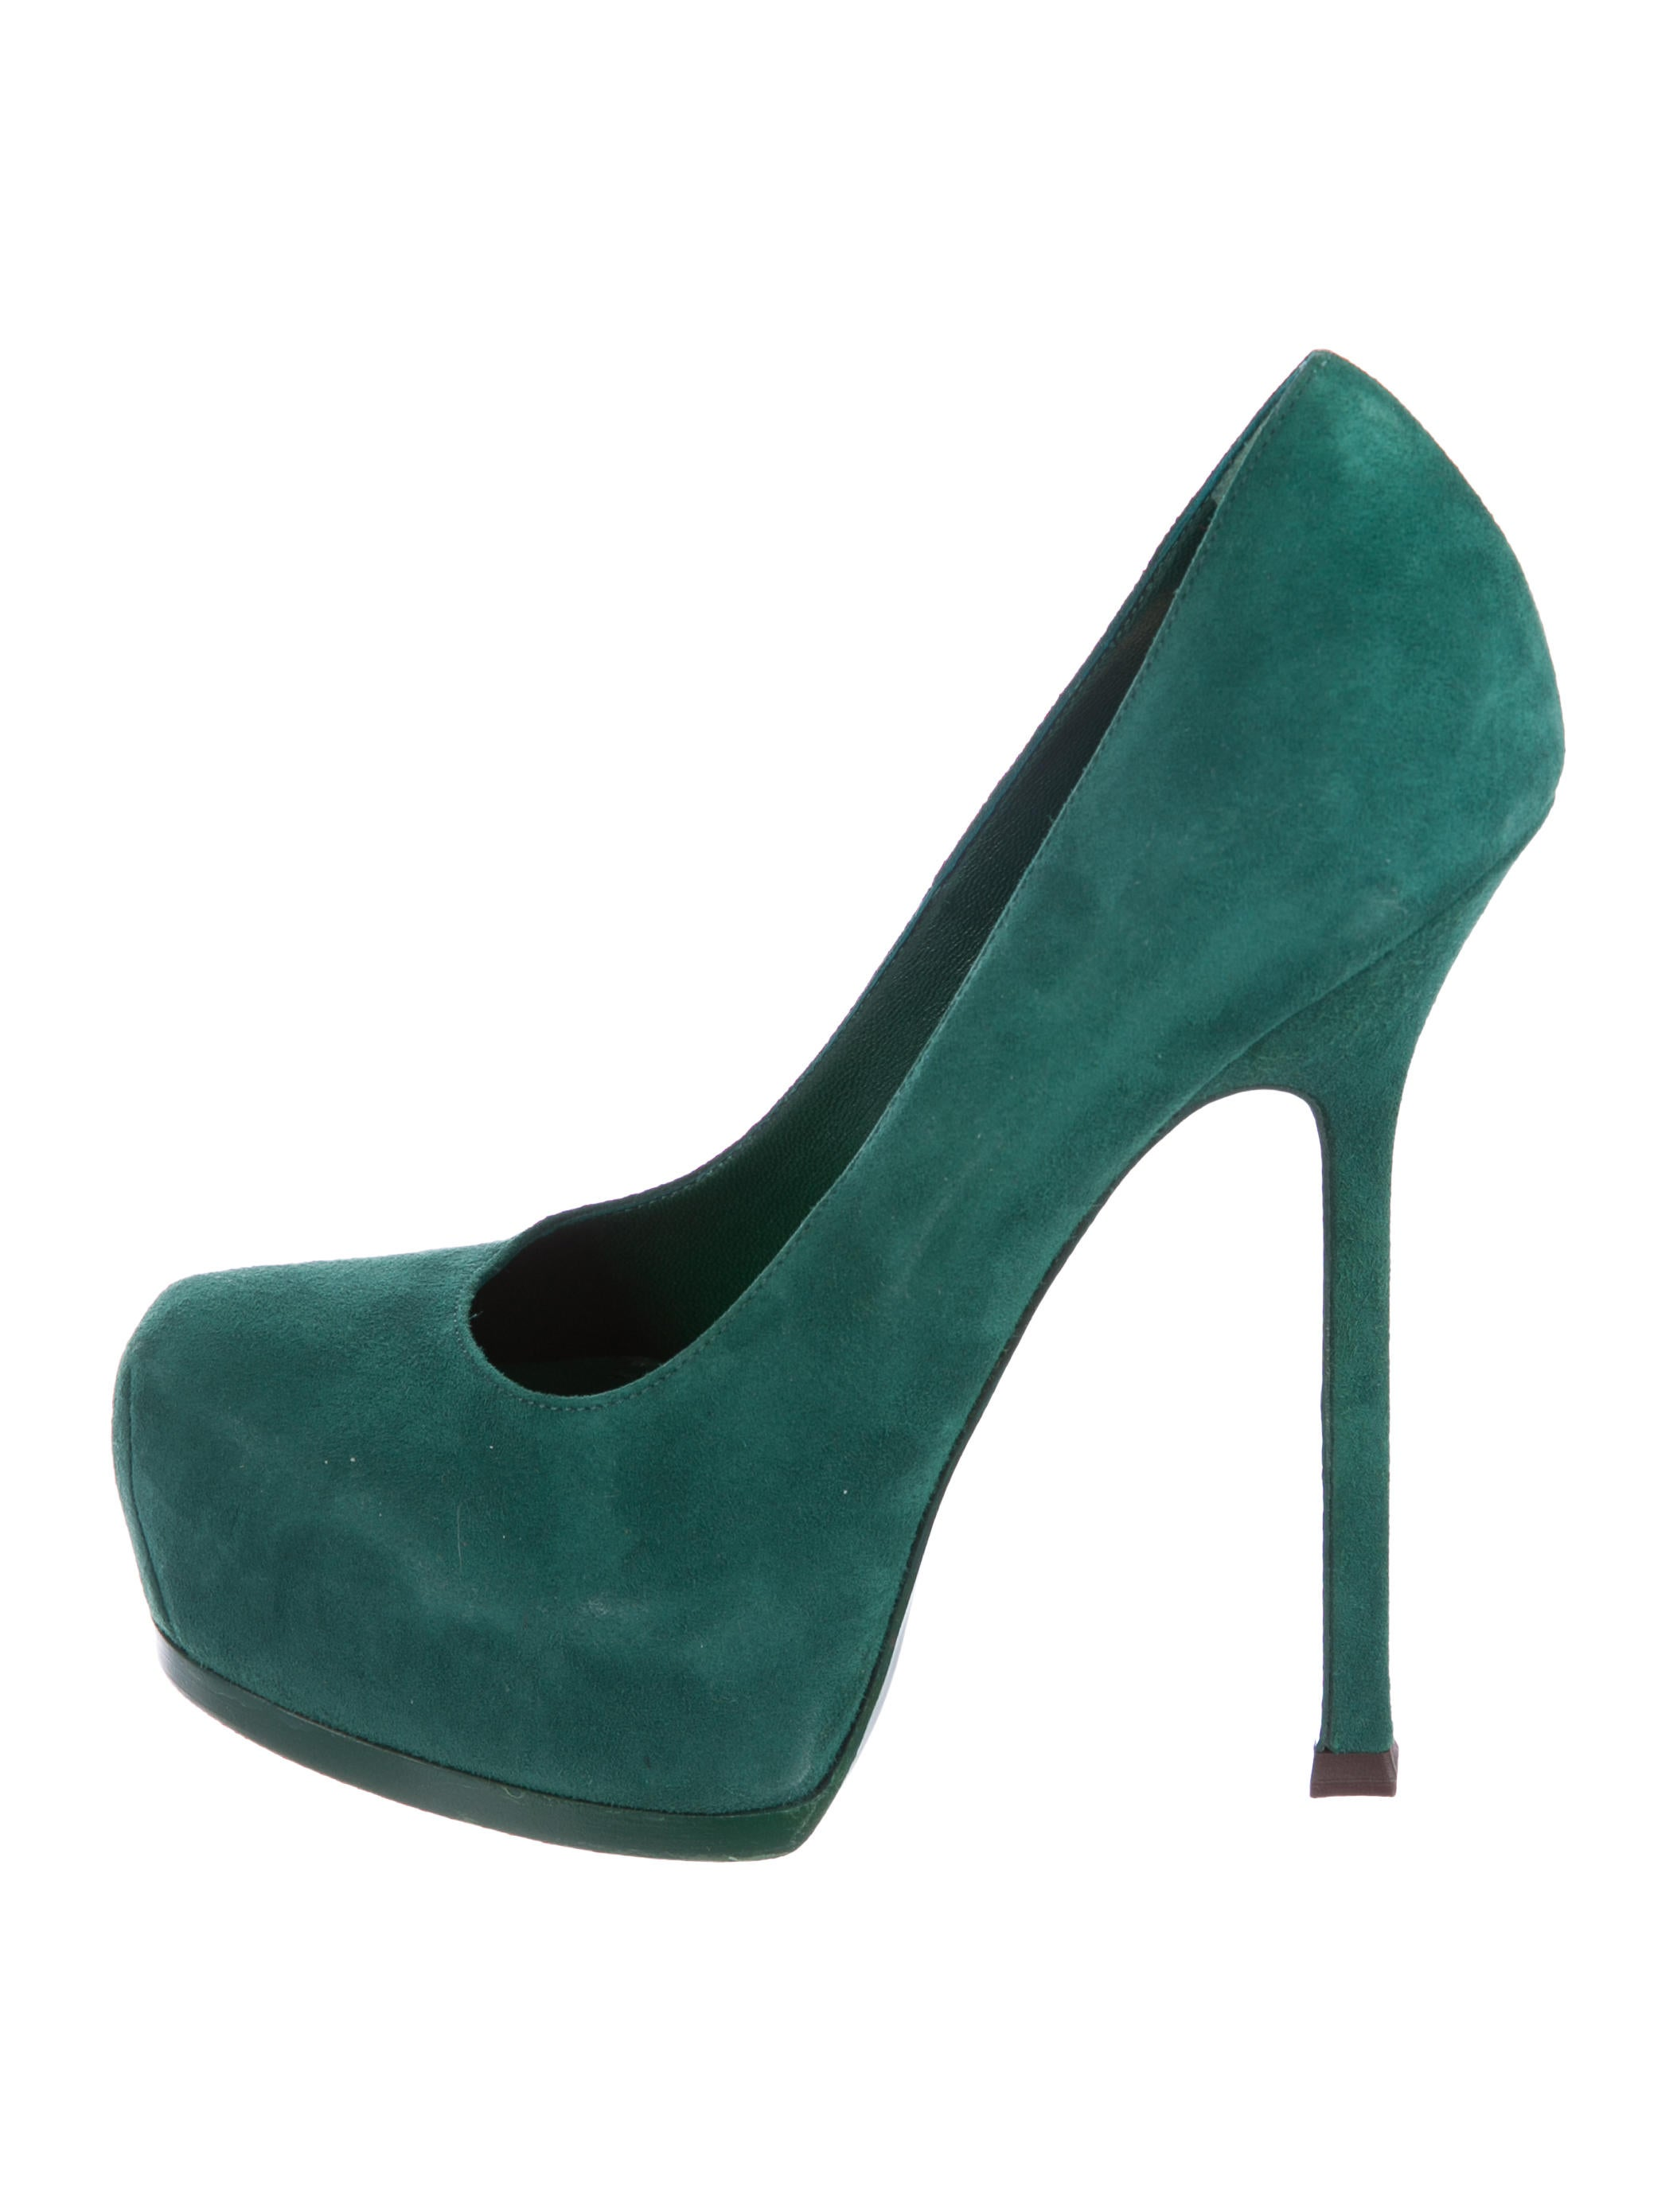 Yves Saint Laurent Suede Tribute Two Pumps cheap genuine original sale online ebay how much 1uqXmL